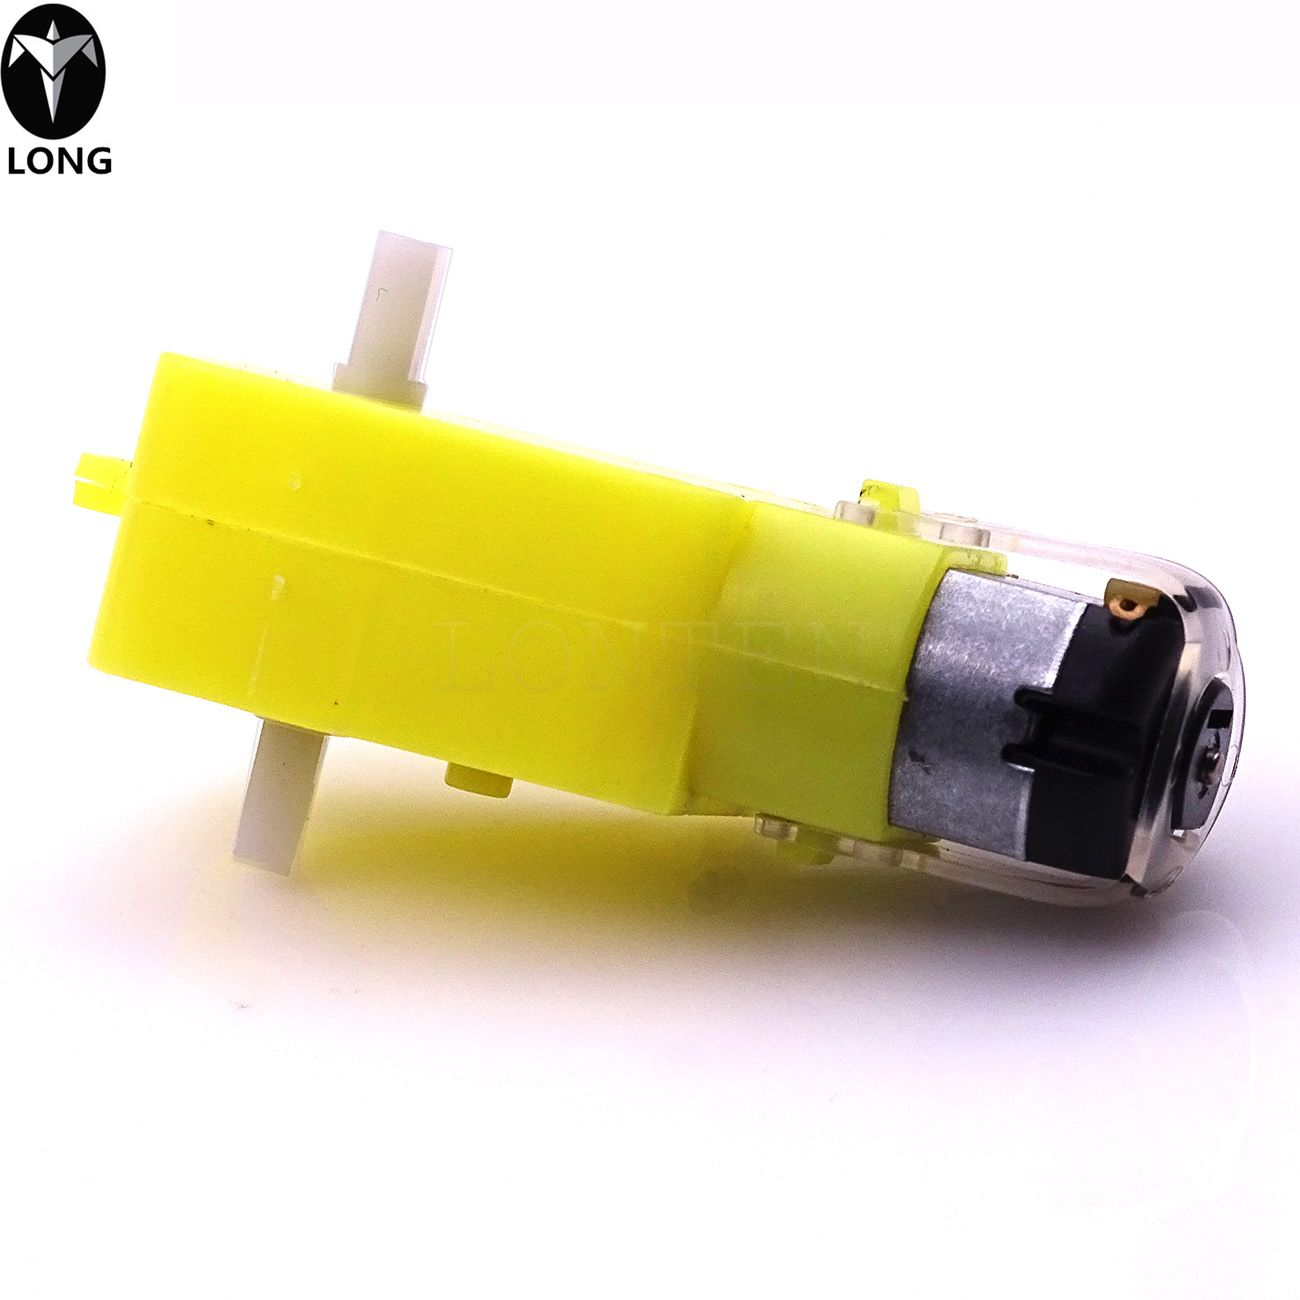 TT Motor Smart Car Robot Gear Motor for Ard learning